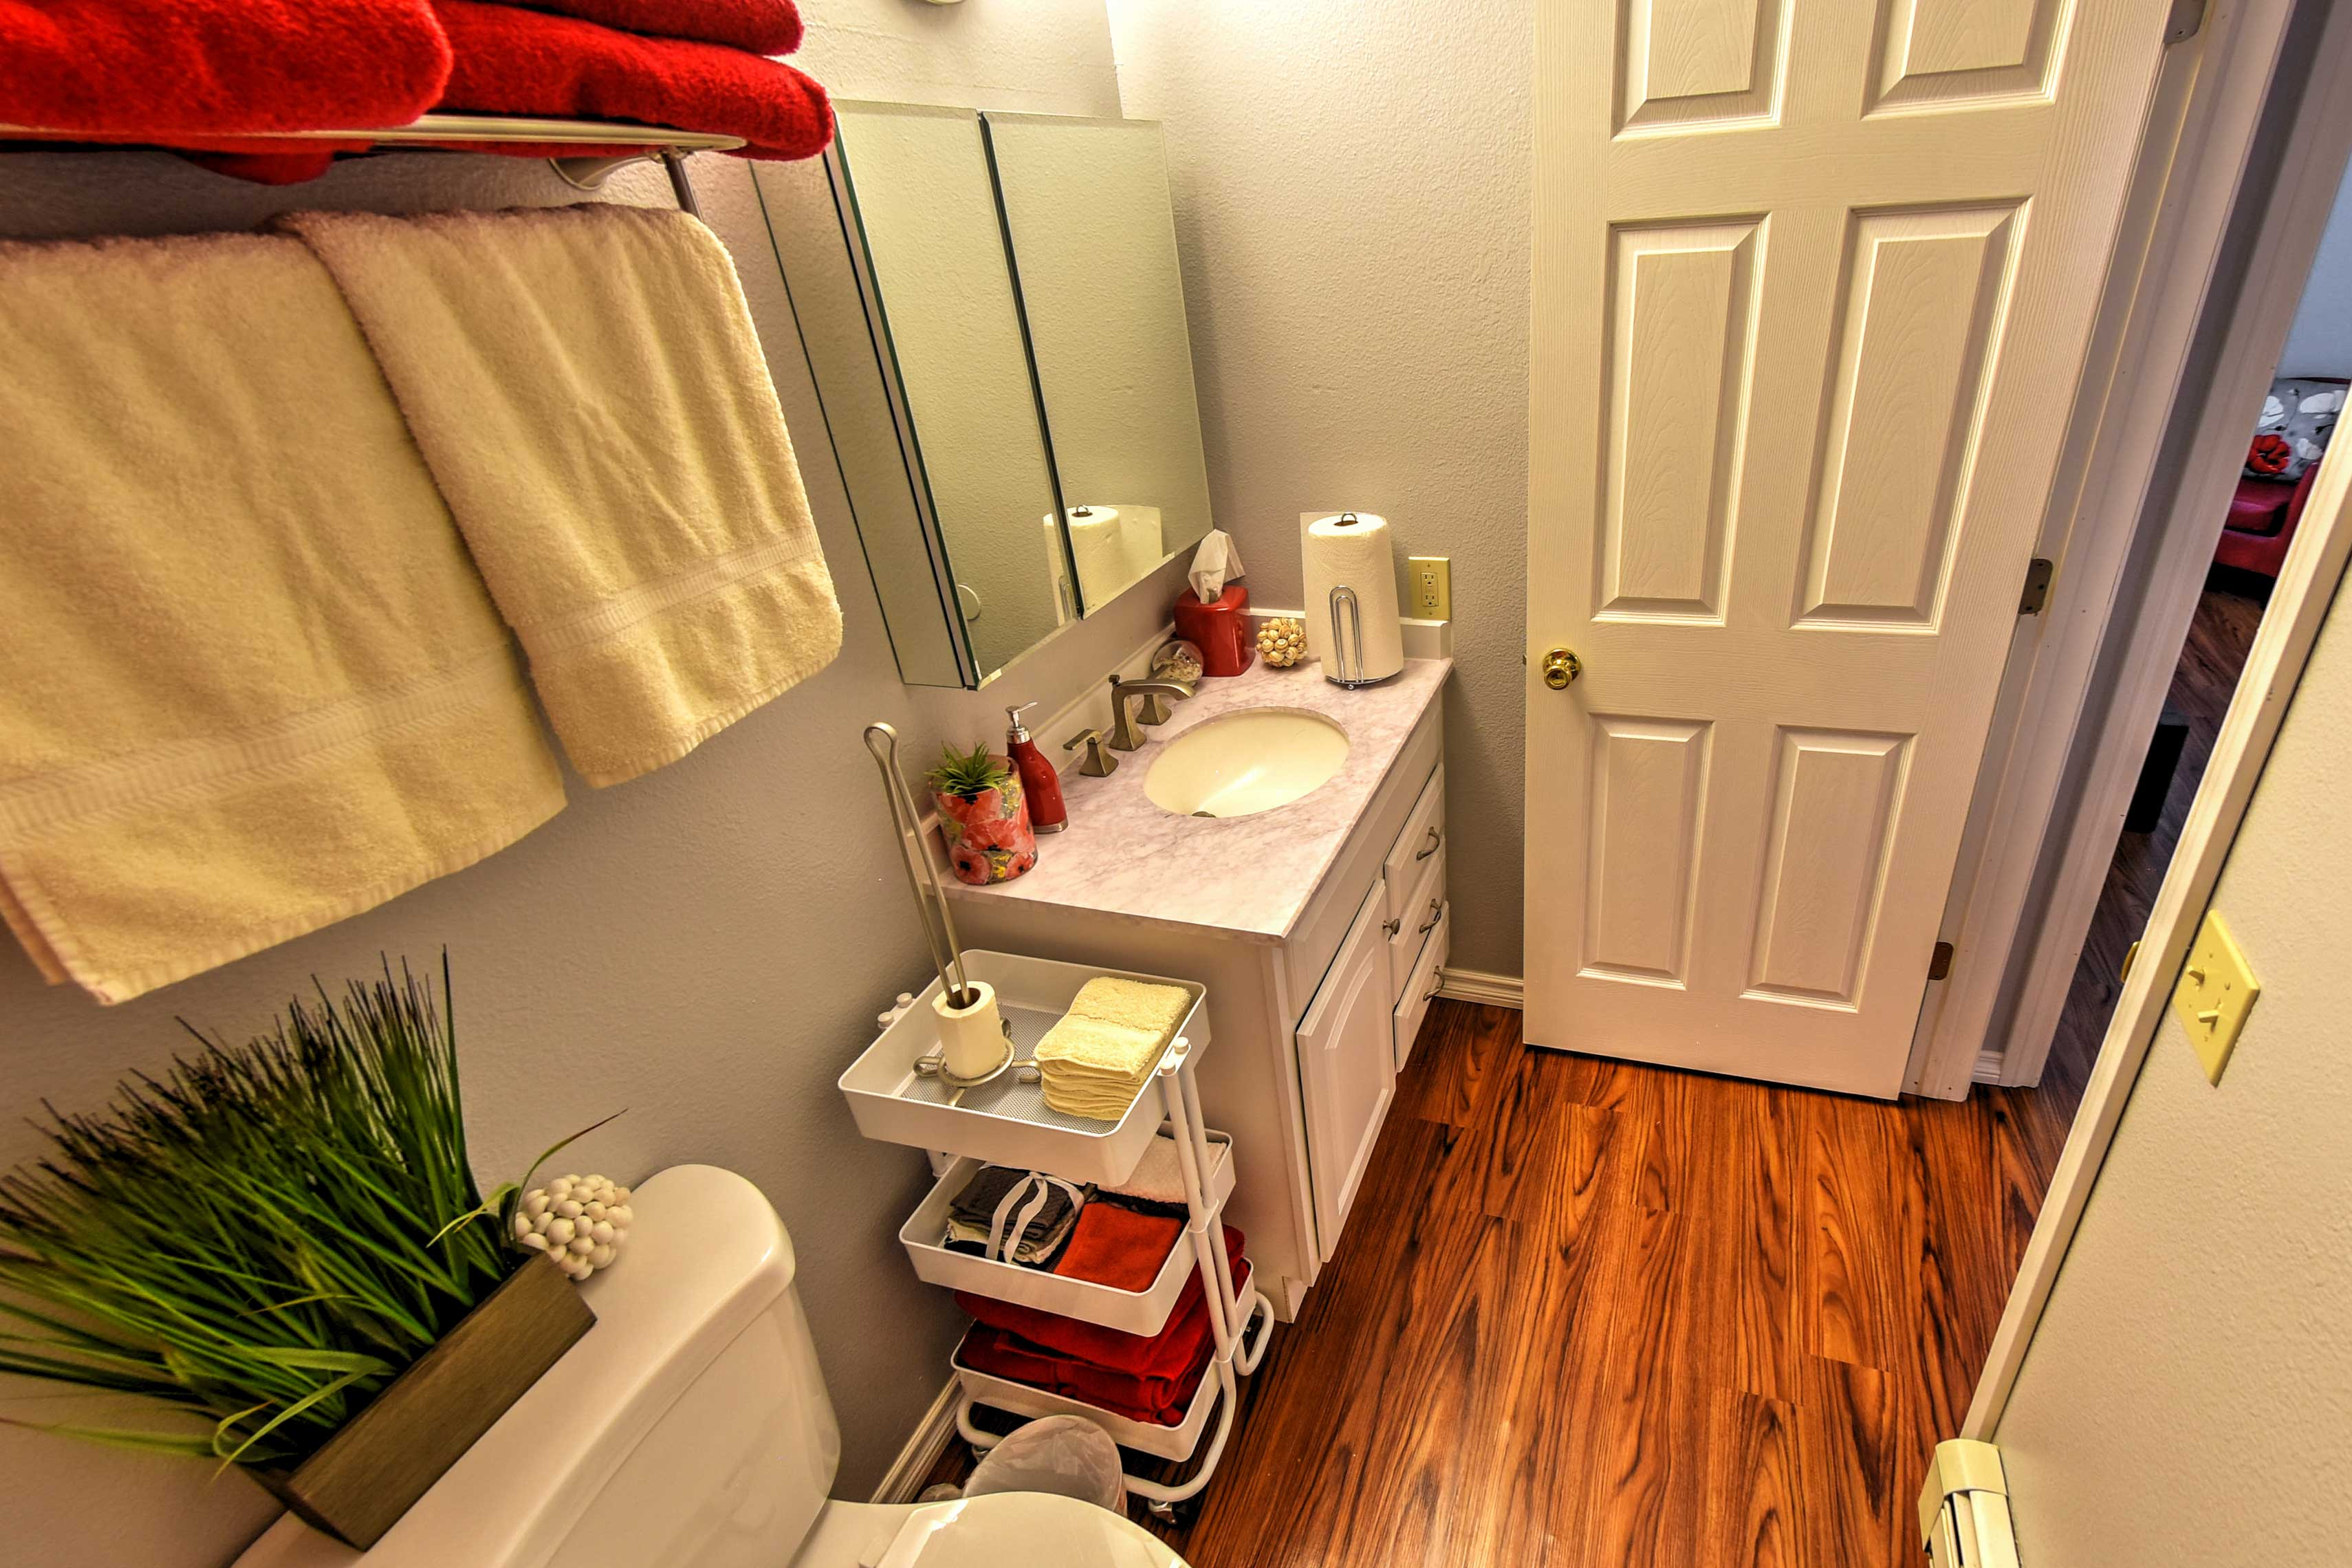 Get ready each morning at the mirrored vanity.